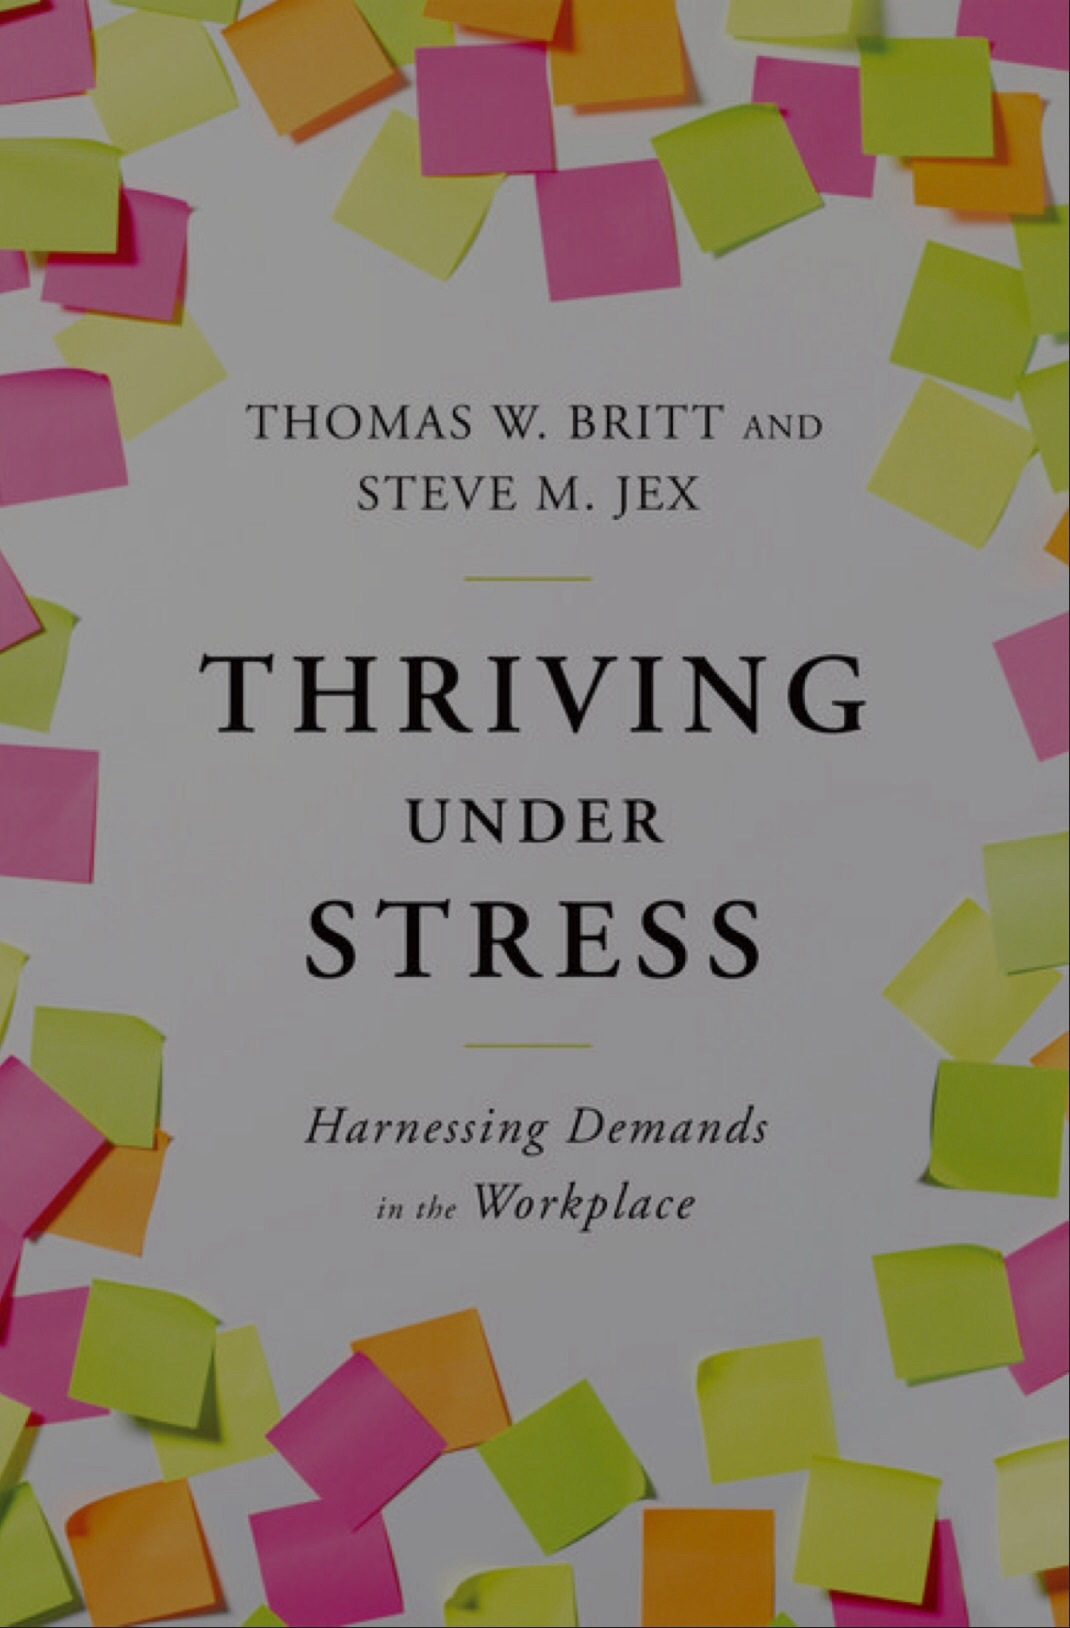 Thriving-Under-Stress-Harnessing-Demands-in-the-Workplace